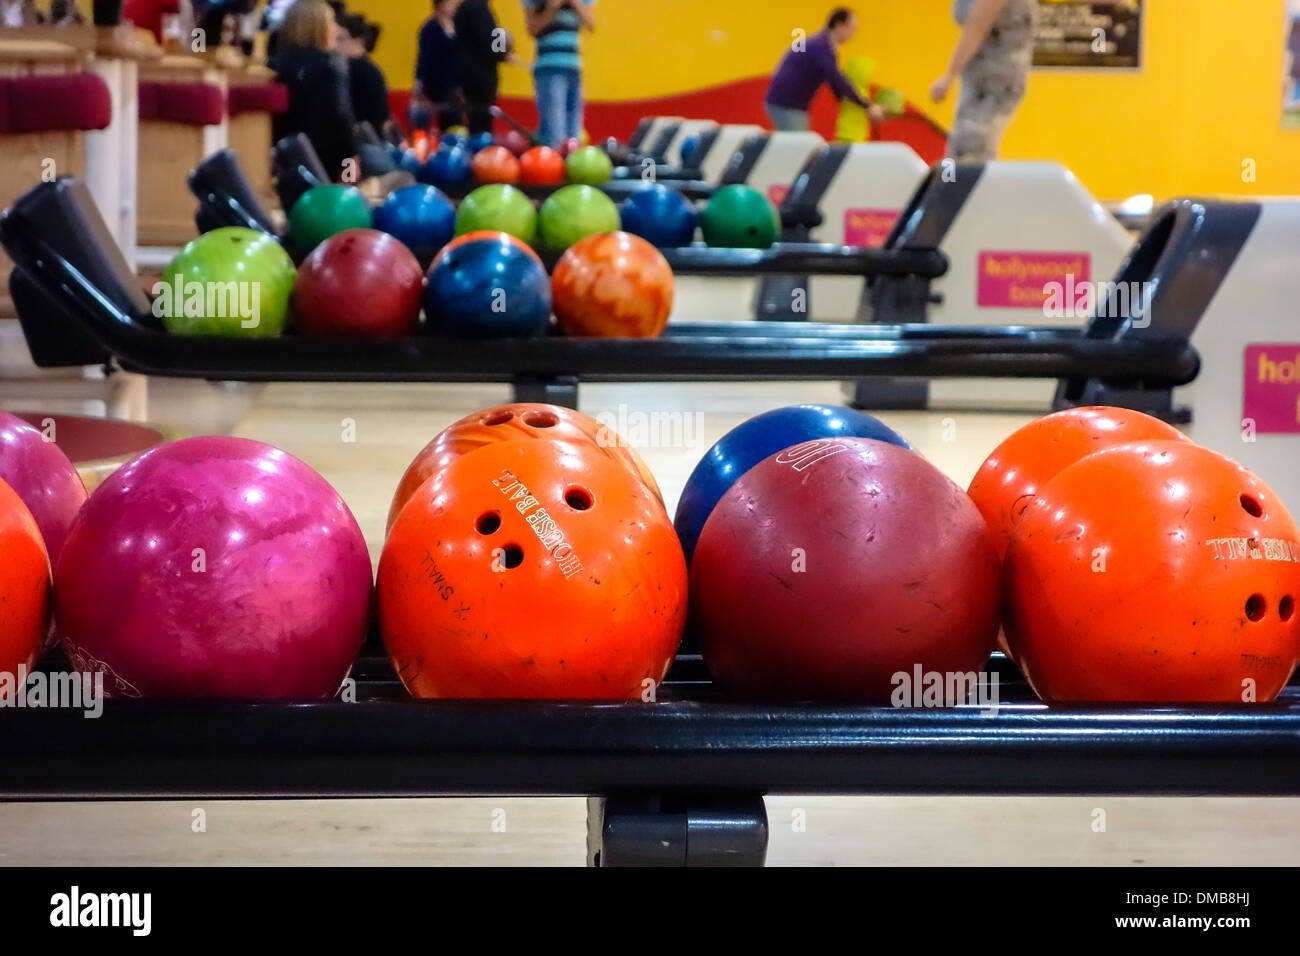 Colourful bowling balls lined up on rack ready for play. - Stock Image